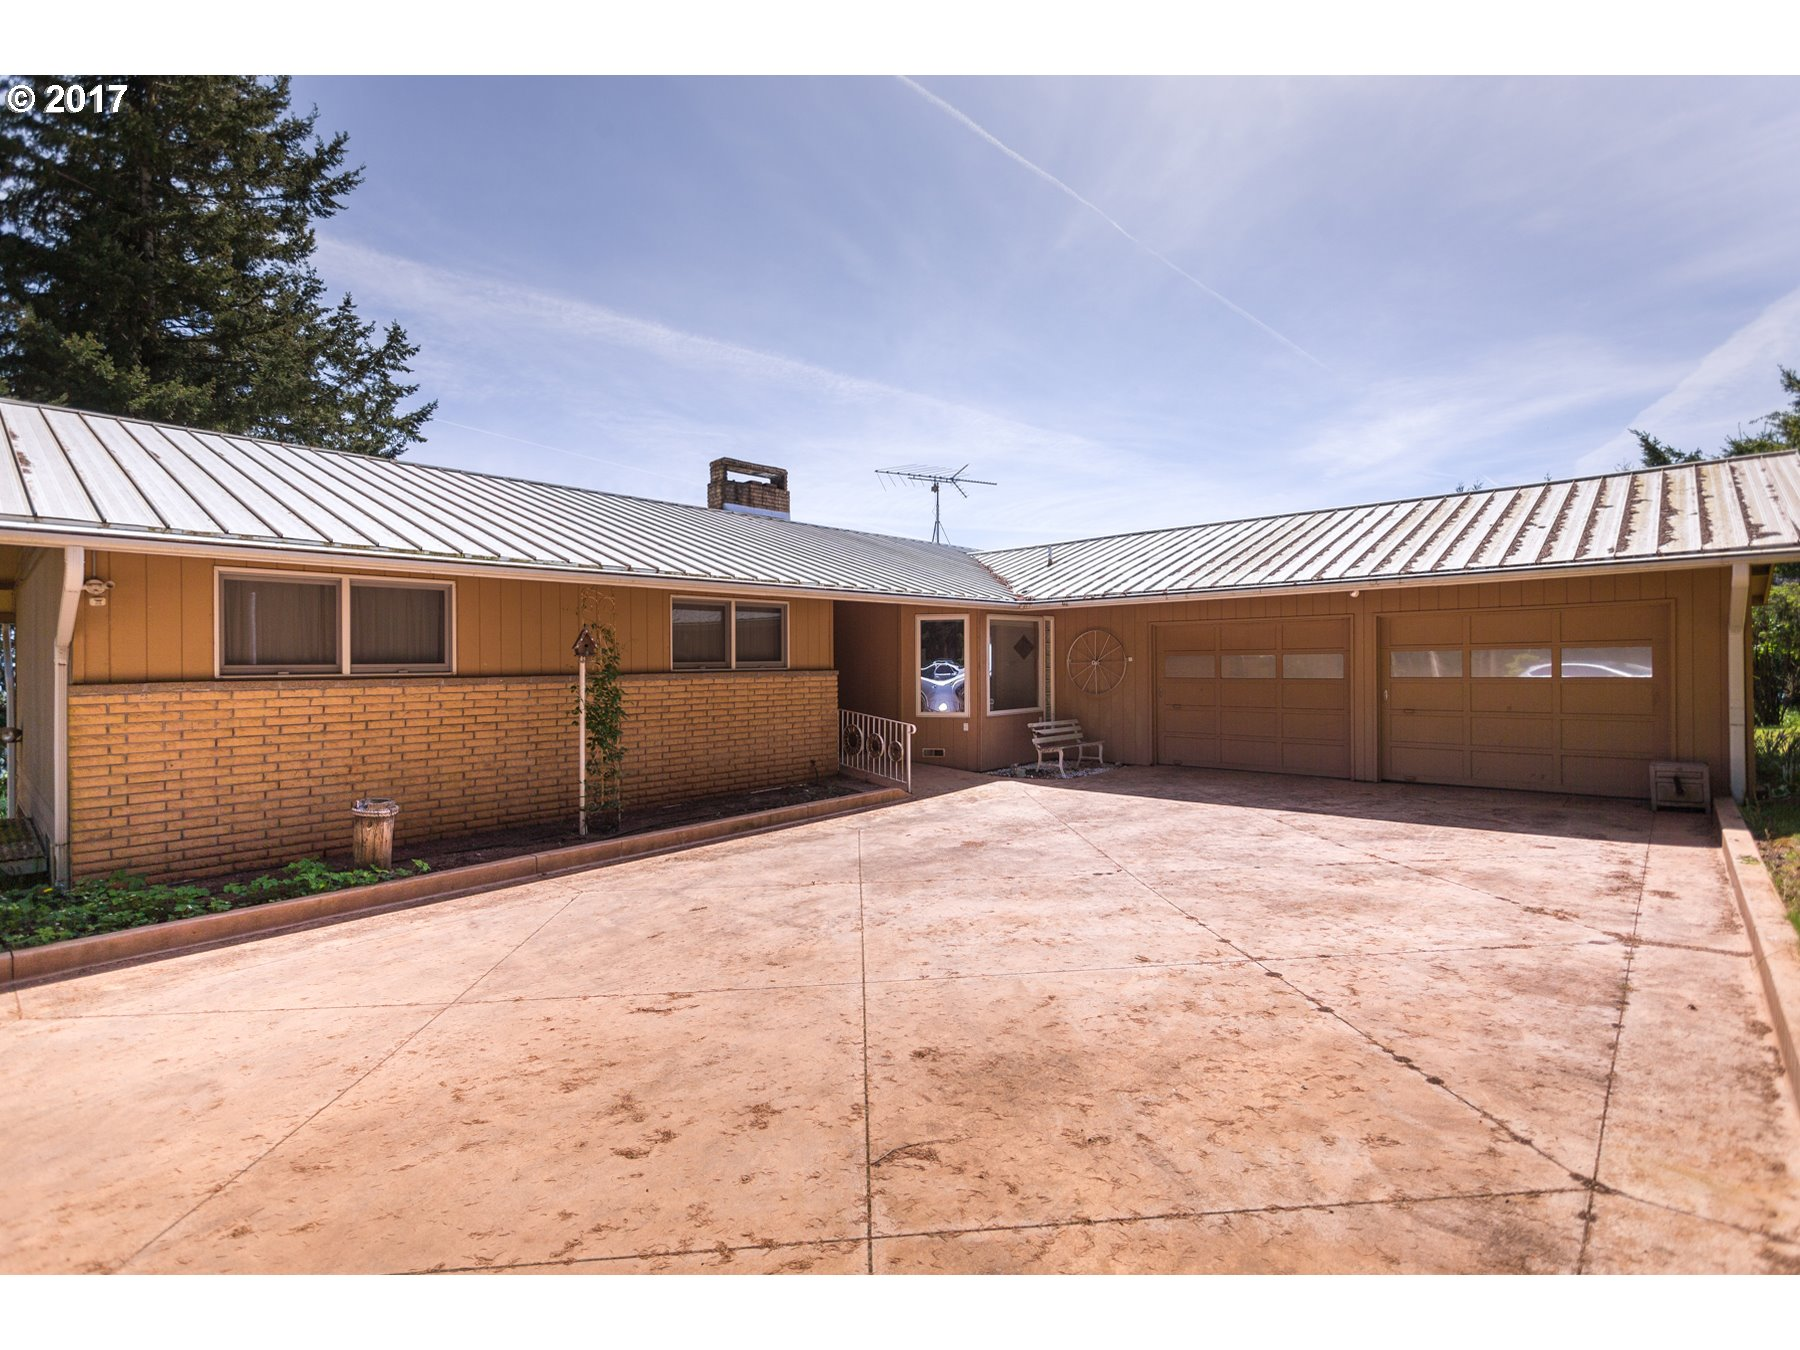 18775 NE TRUNK RD, Dundee, OR 97115